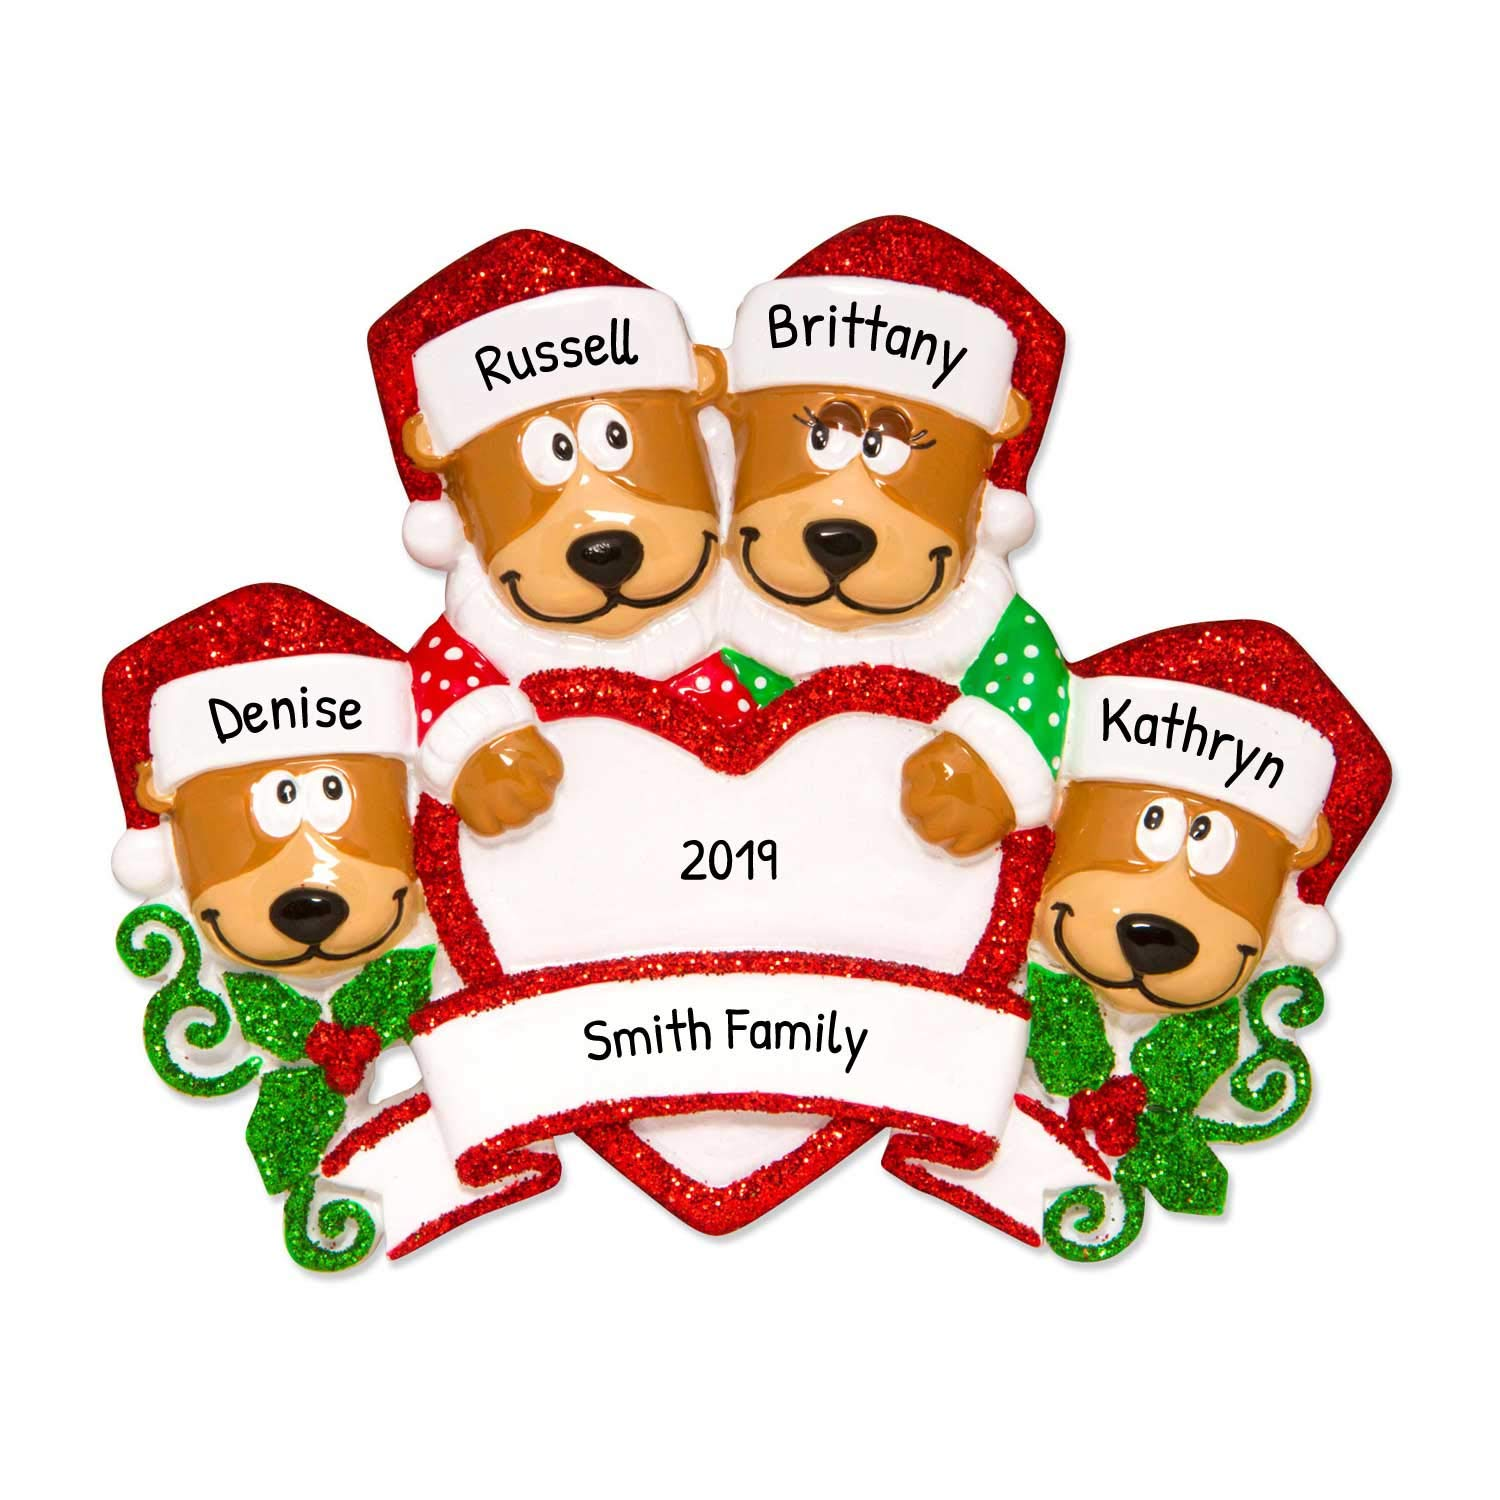 Free Product With Purchase Christmas 2020 Amazon.com: Personalized Brown Bear Family of 4 Christmas Tree